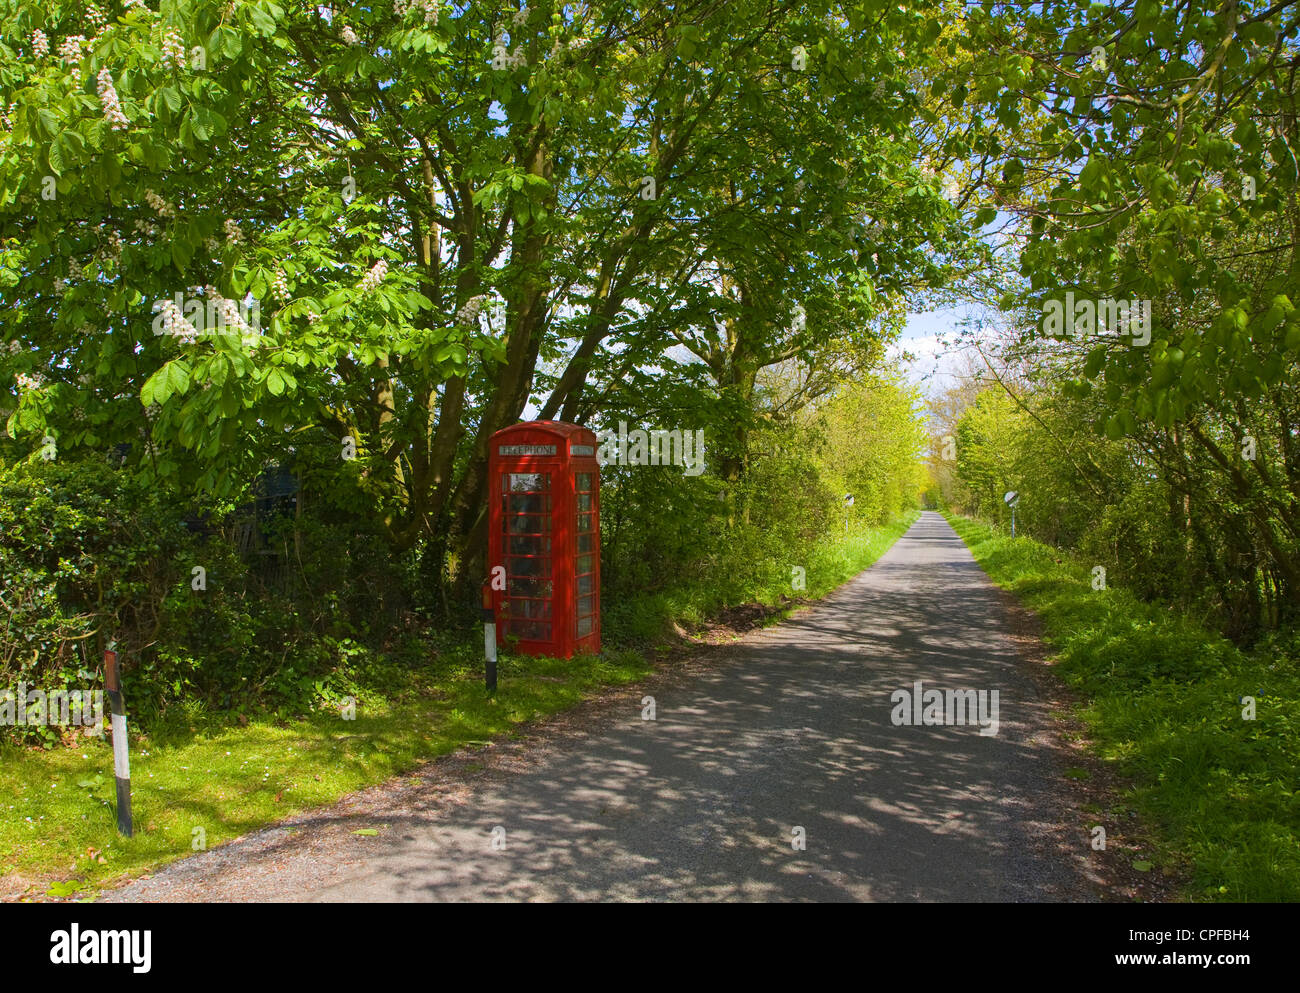 Traditional red telephone box booth in countryside - Stock Image